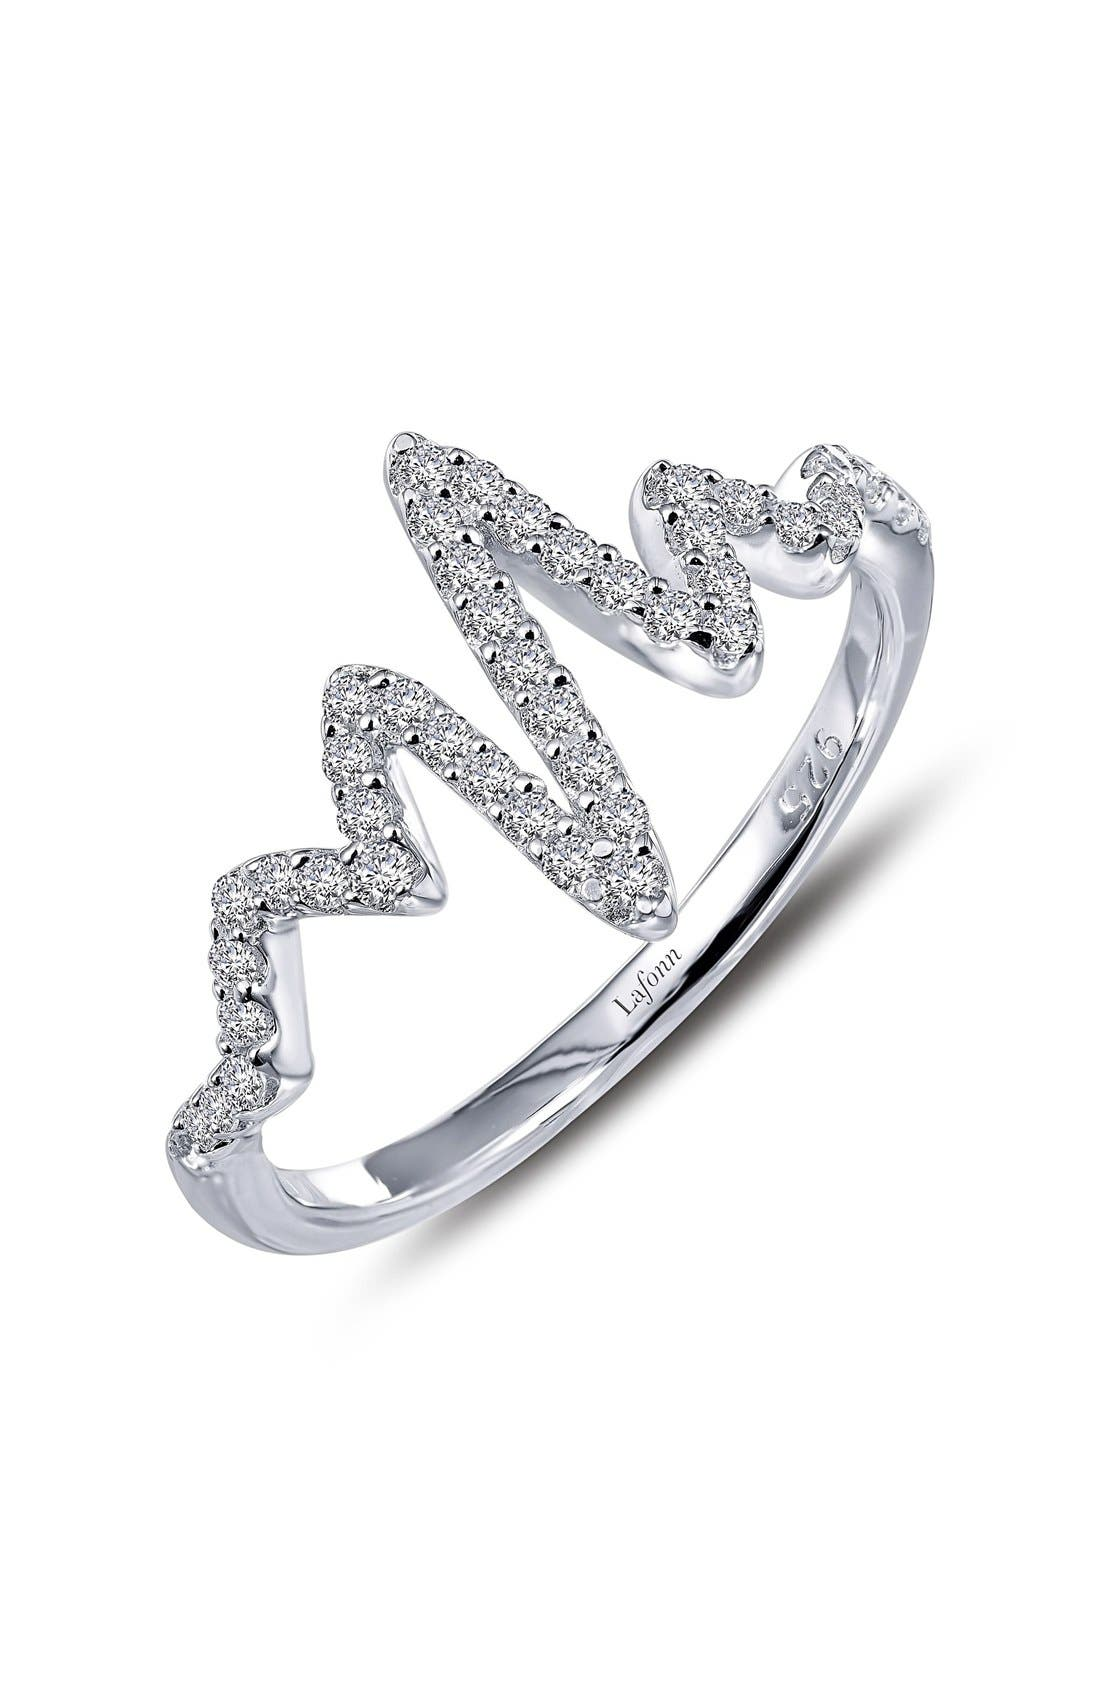 Forty-five sparkling simulated diamonds dust the meandering lines of a striking ring that beautifully represents the percussive and enduring quality of your unique heartbeat. Style Name: Lafonn \\\'Lassaire\\\' Pulse Ring. Style Number: 5164254. Available in stores.